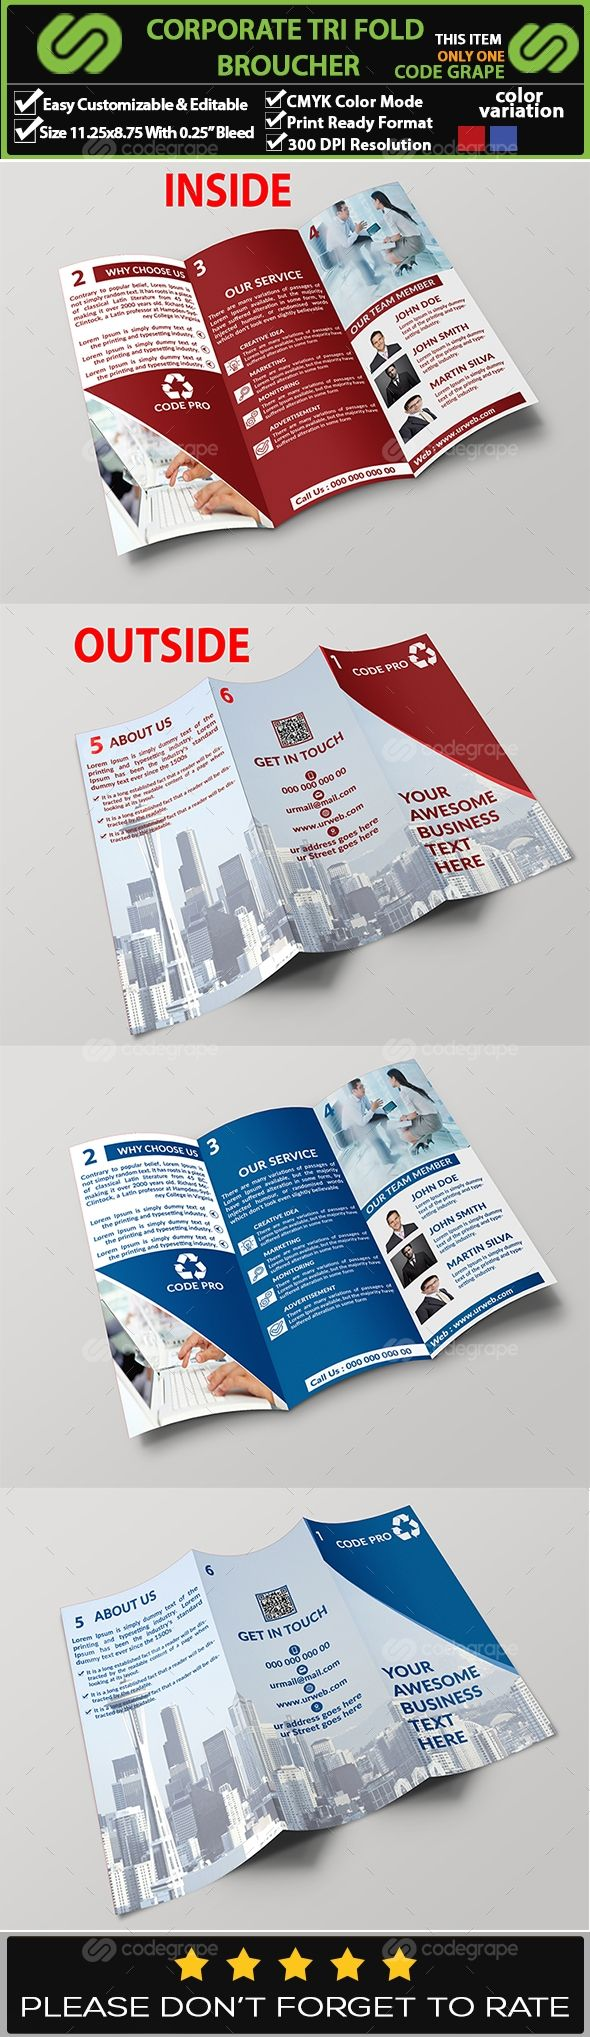 Corporate Trifold Brochure on @codegrape. More Info: https://www.codegrape.com/item/corporate-trifold-brochure/11327